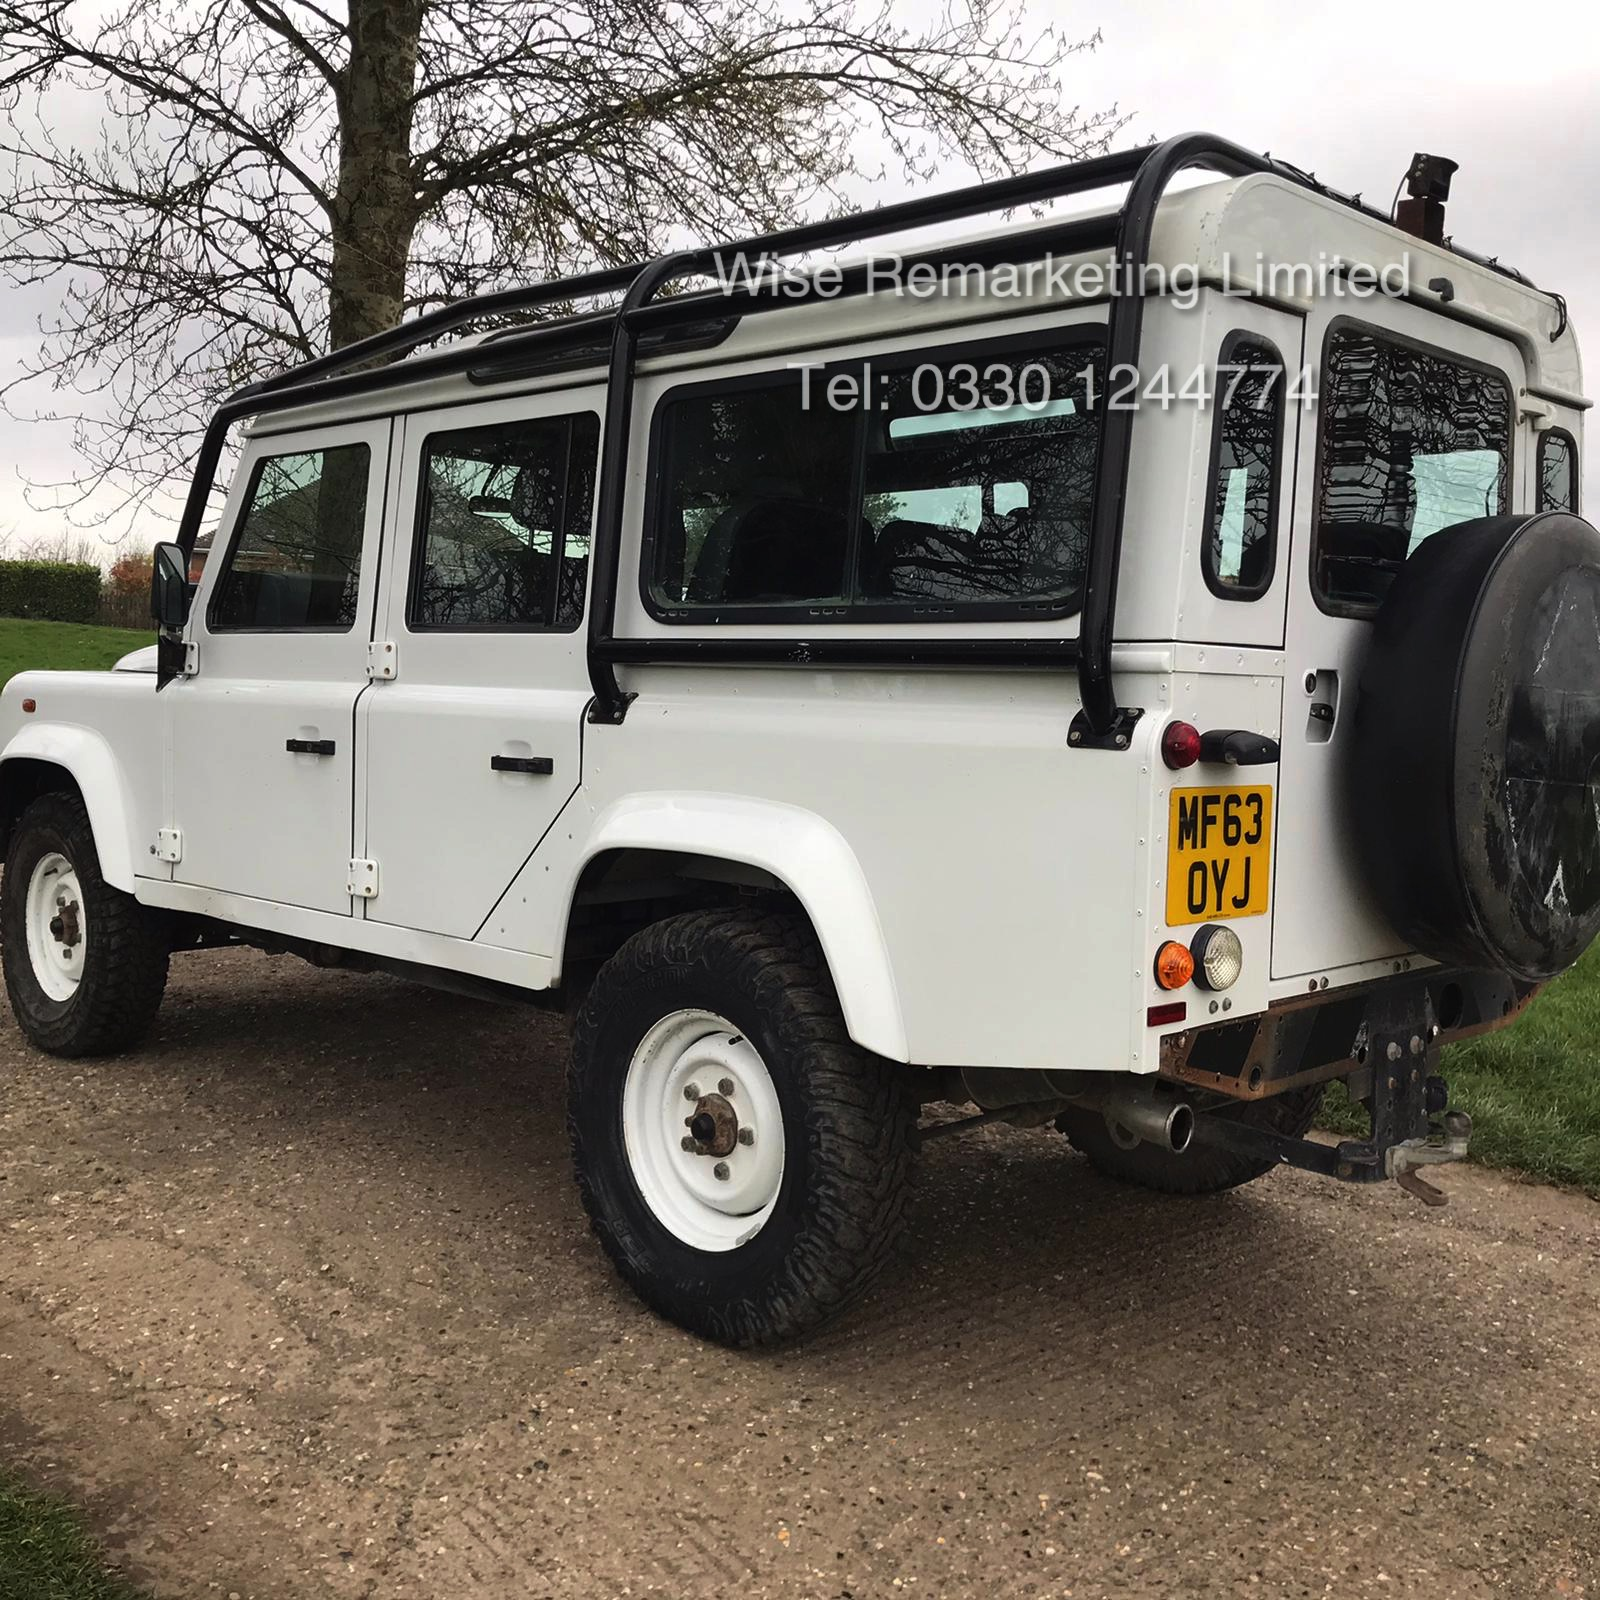 Land Rover Defender 110 2.2 TD County Station Wagon - 2014 Model - 1 Owner From New - ONLY 19K Miles - Image 6 of 21